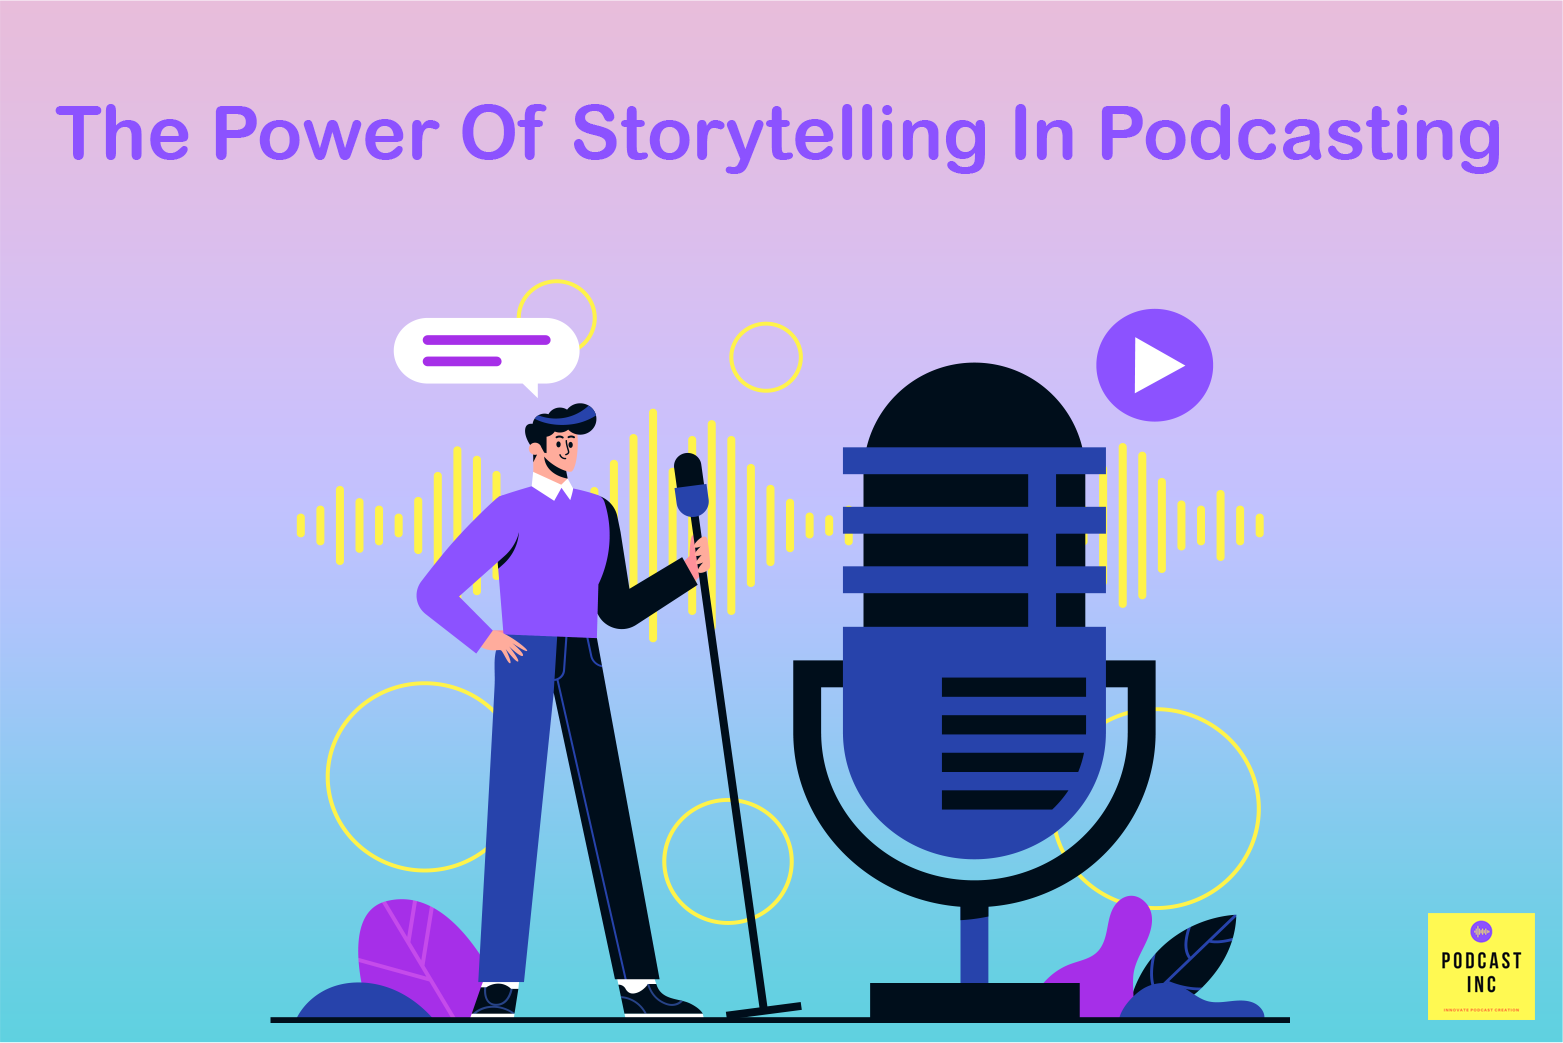 The  Power of Storytelling in Podcasting